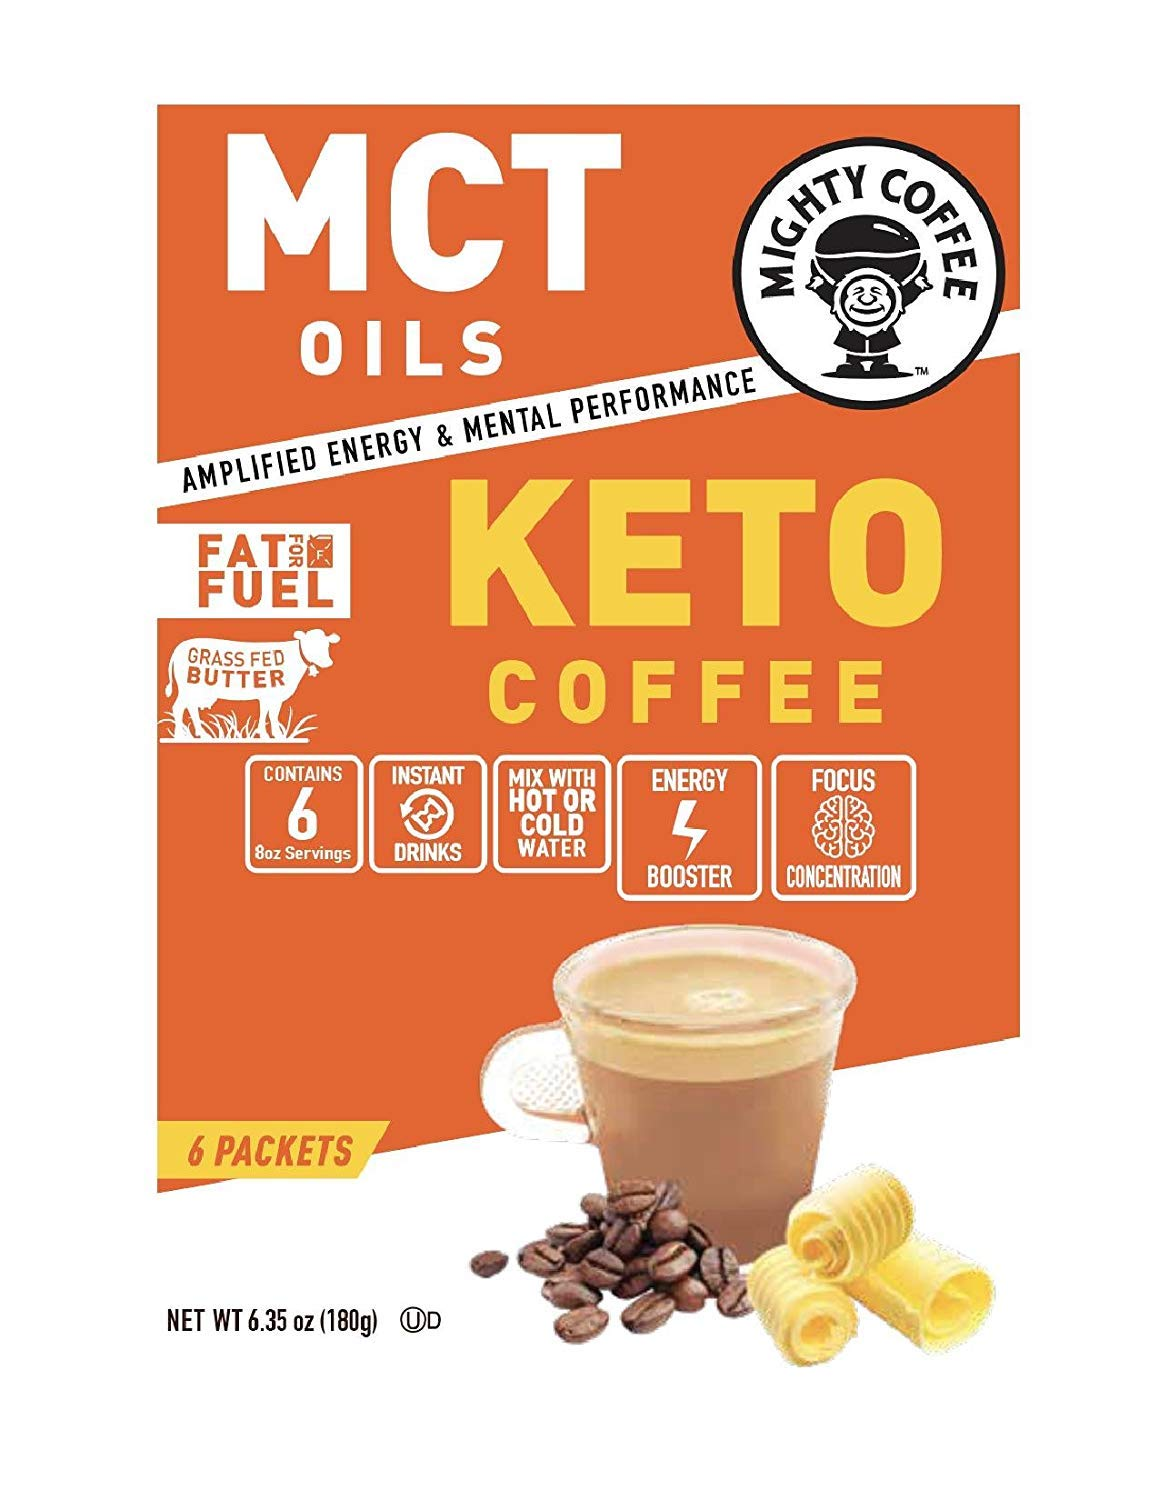 【着後レビューで 送料無料】 Mighty Coffee Keto Coffee, Box (6) In Packets In Keto Each Box (2 Boxes) B07NQP7MCV, 上房郡:5b9eeeb4 --- svecha37.ru